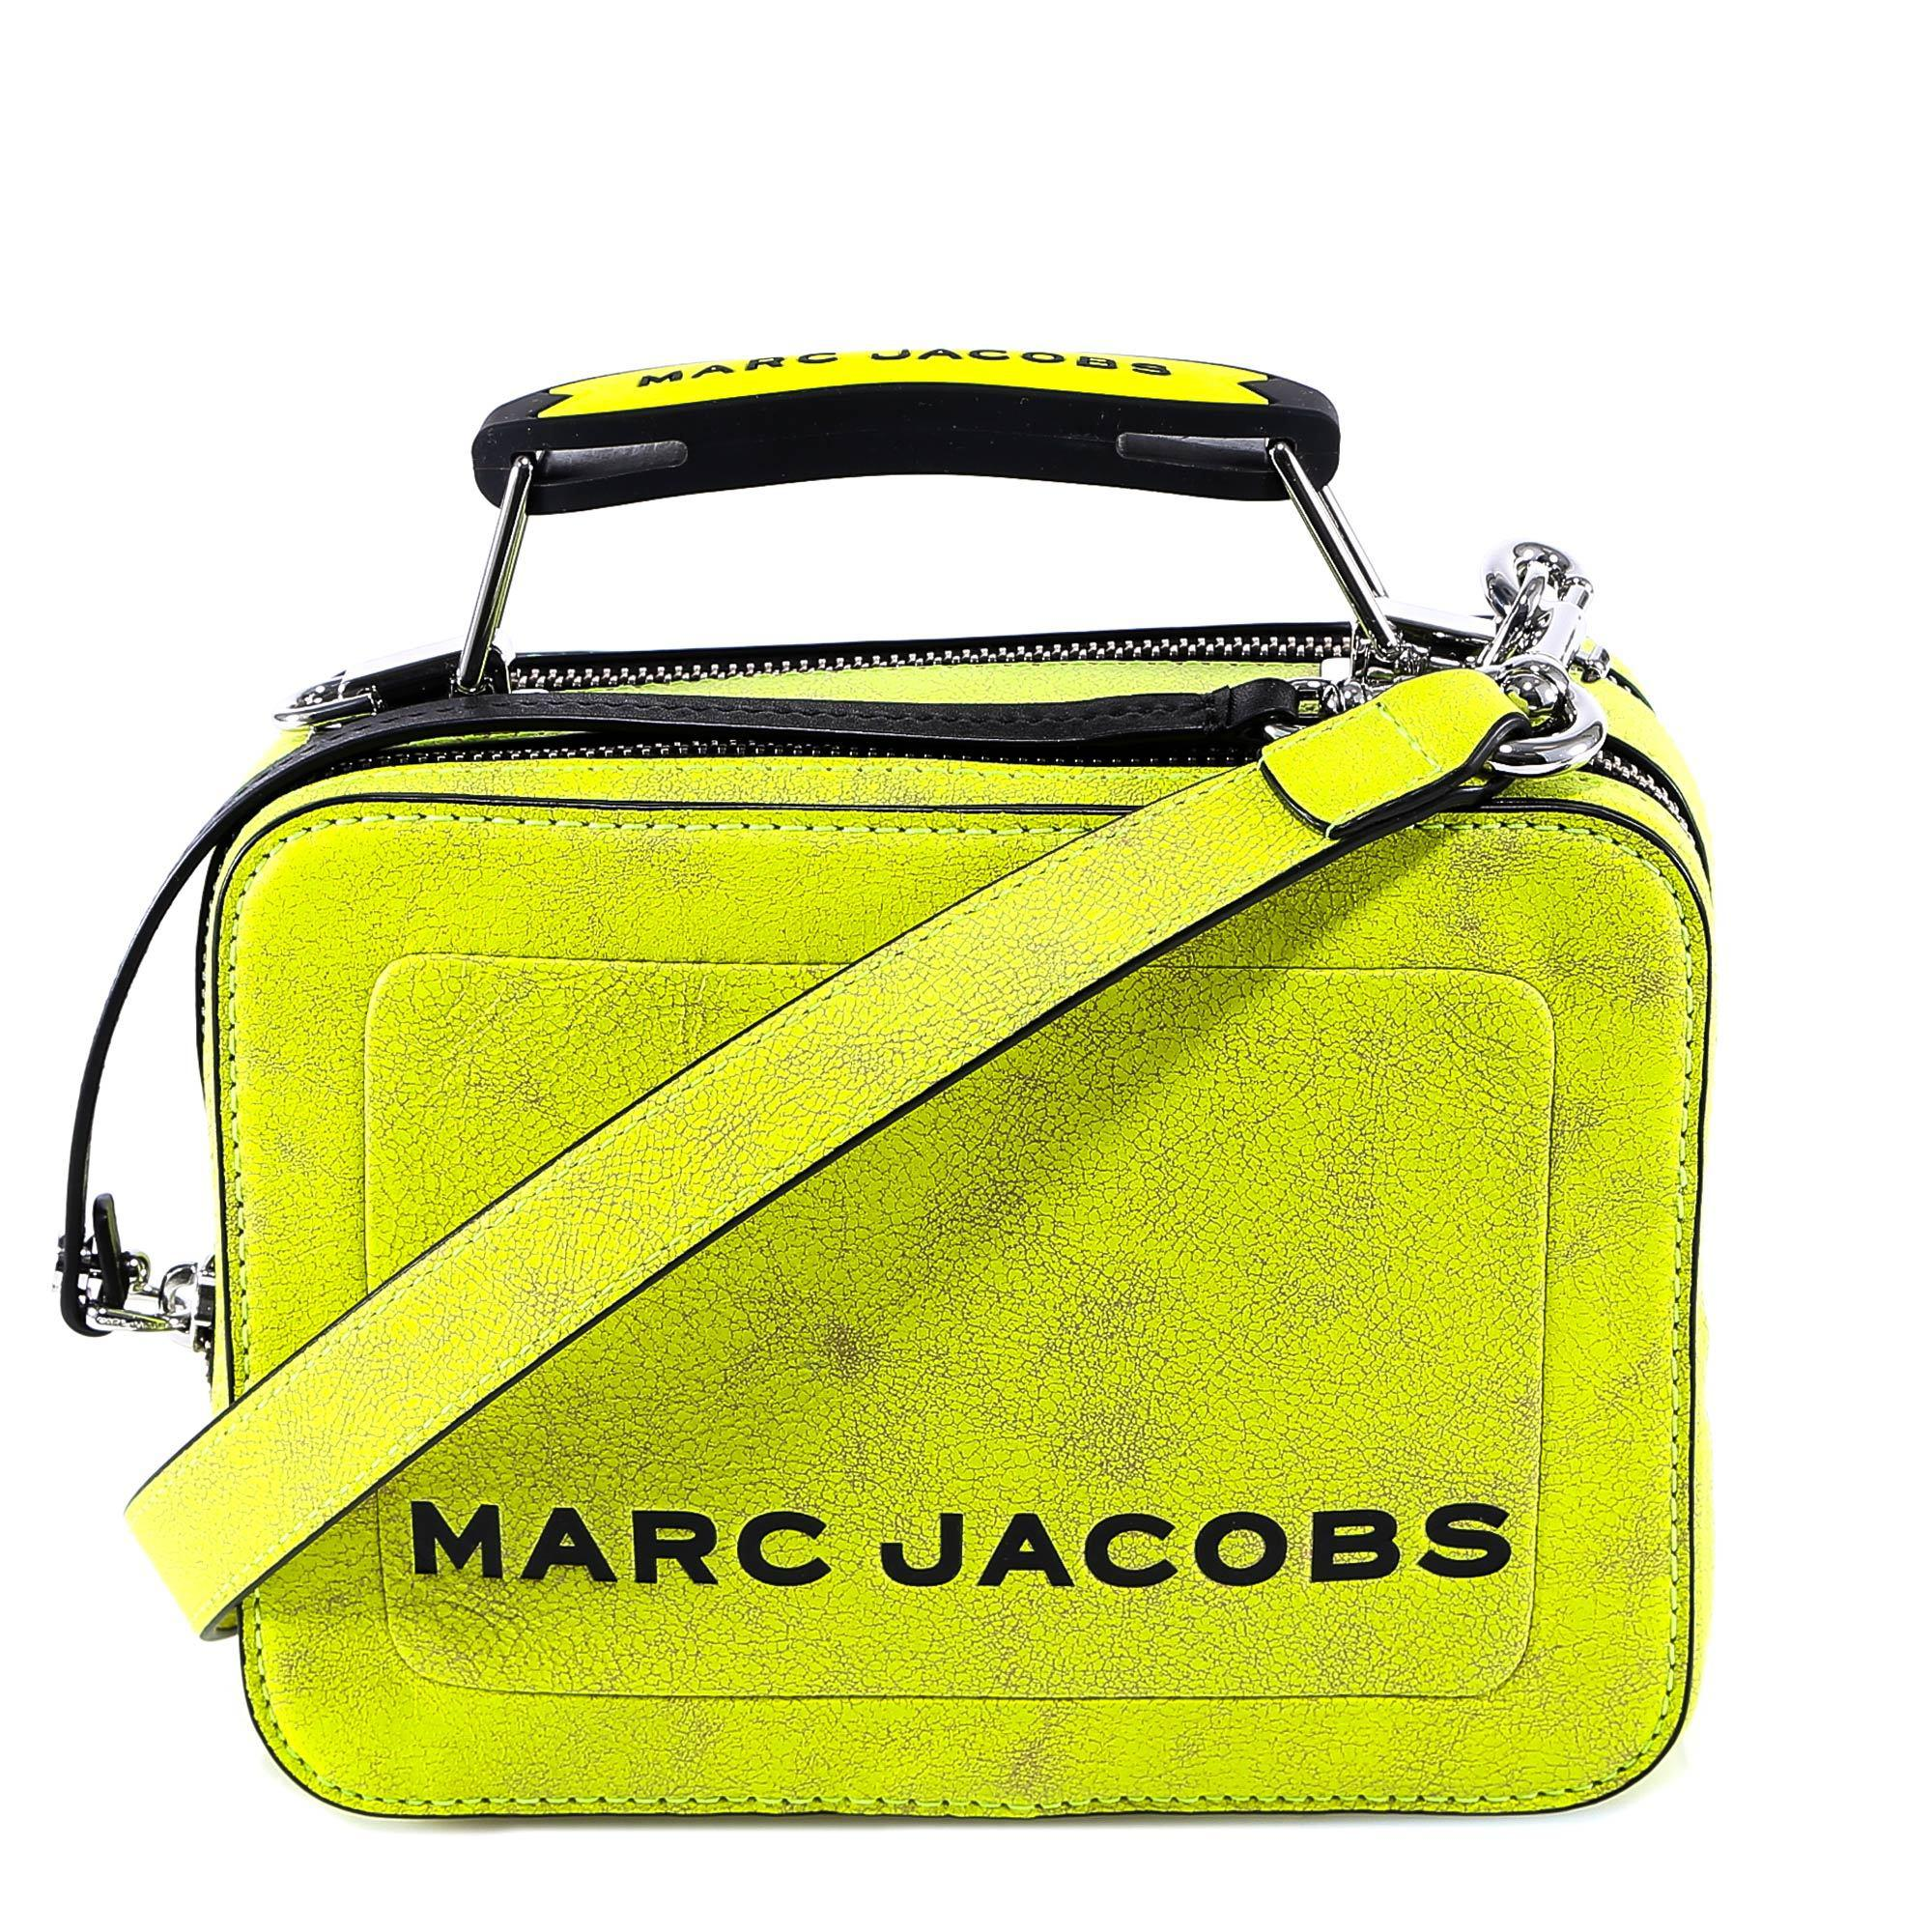 31288109ce31 Marc Jacobs Logo Fluorescent Shoulder Bag in Yellow - Lyst